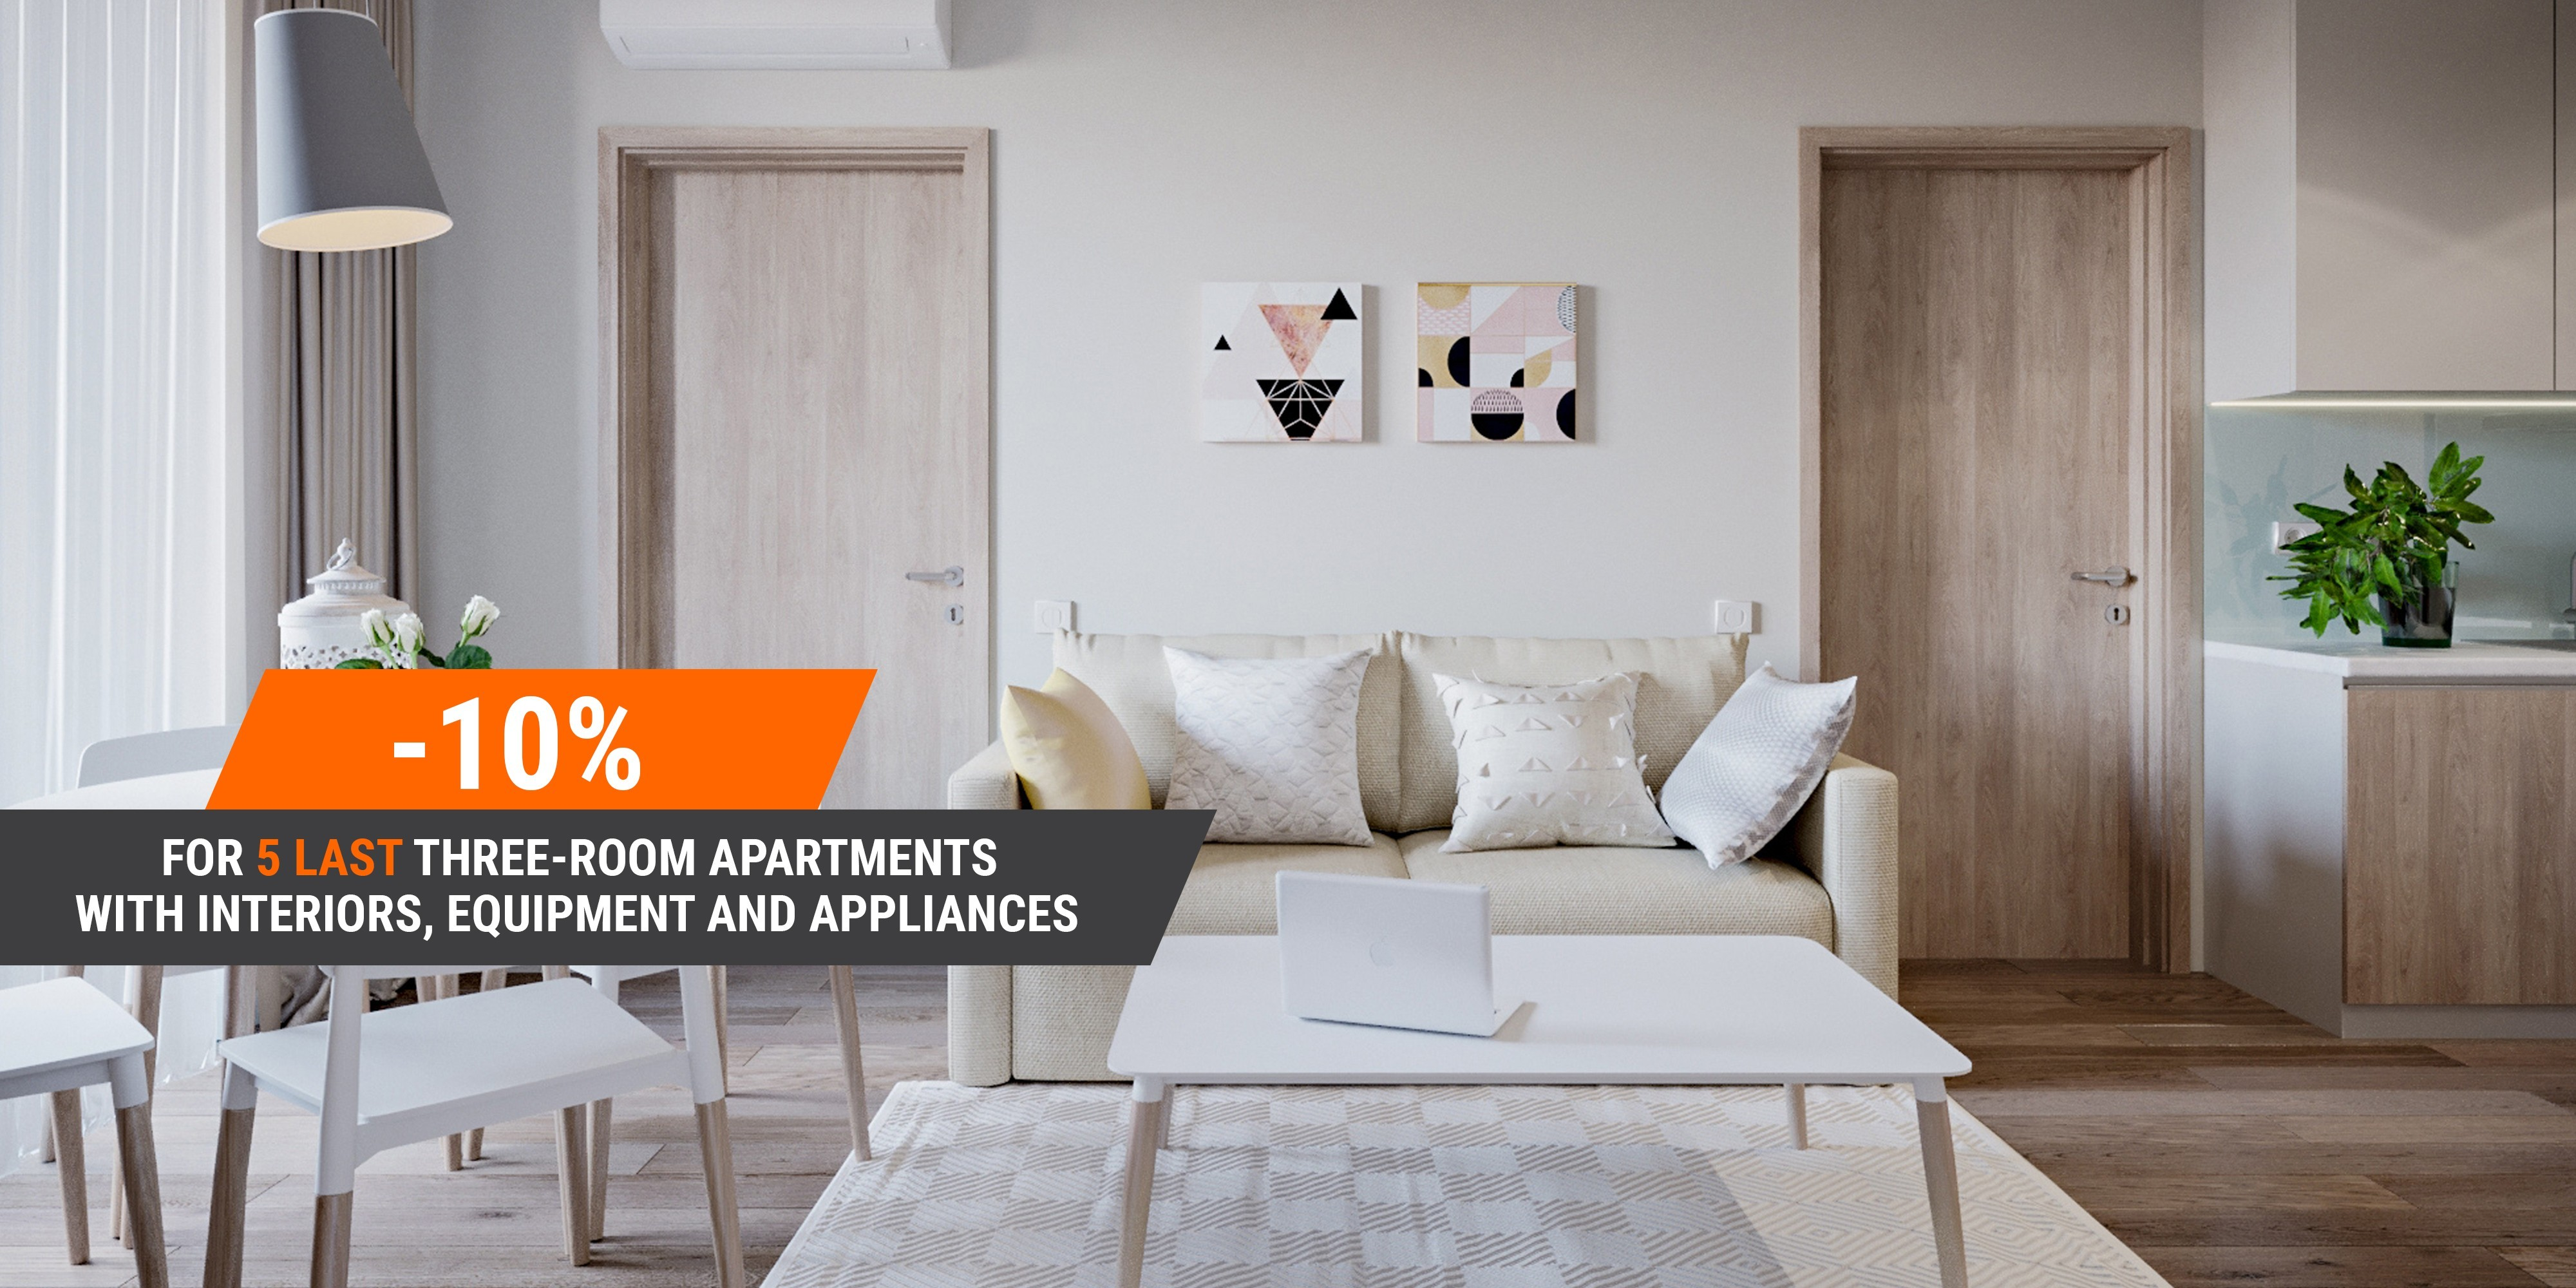 LAST 5 APARTMENTS OFFER FROM STANDARD ONE !